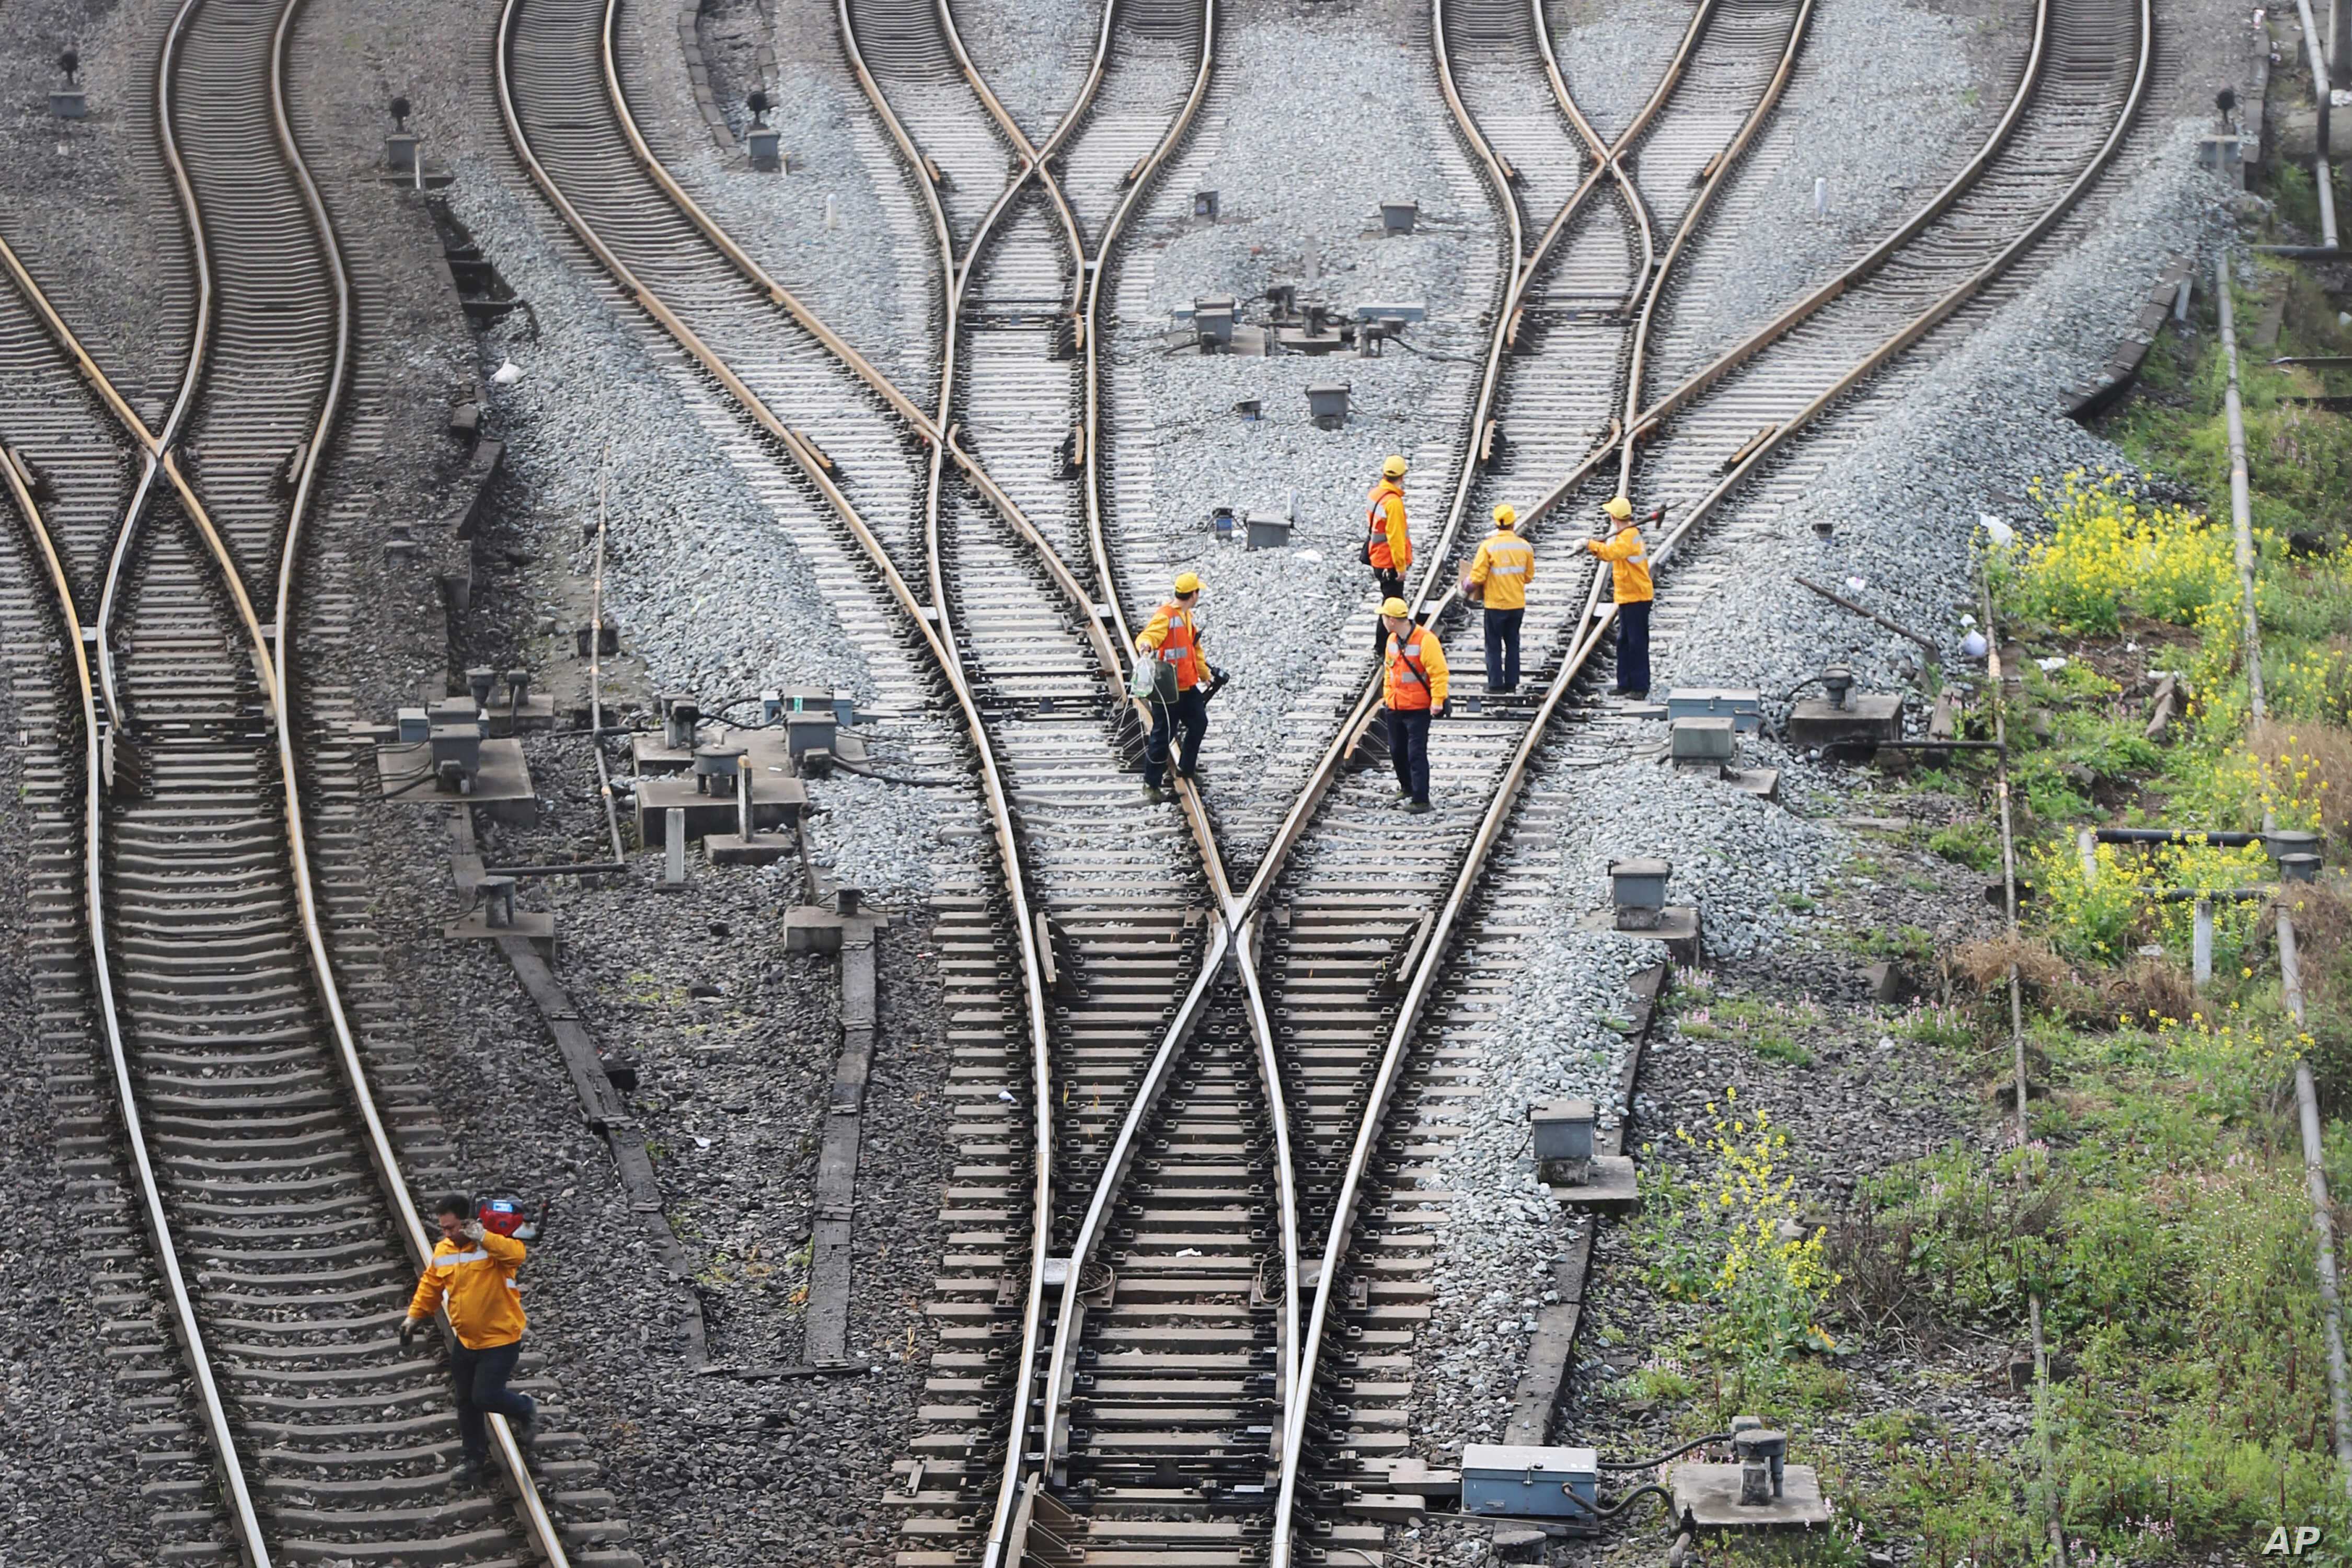 Workers inspect railway tracks, which serve as a part of the Belt and Road freight rail route linking Chongqing to Duisburg, at Dazhou railway station in Sichuan province, China, March 14, 2019.